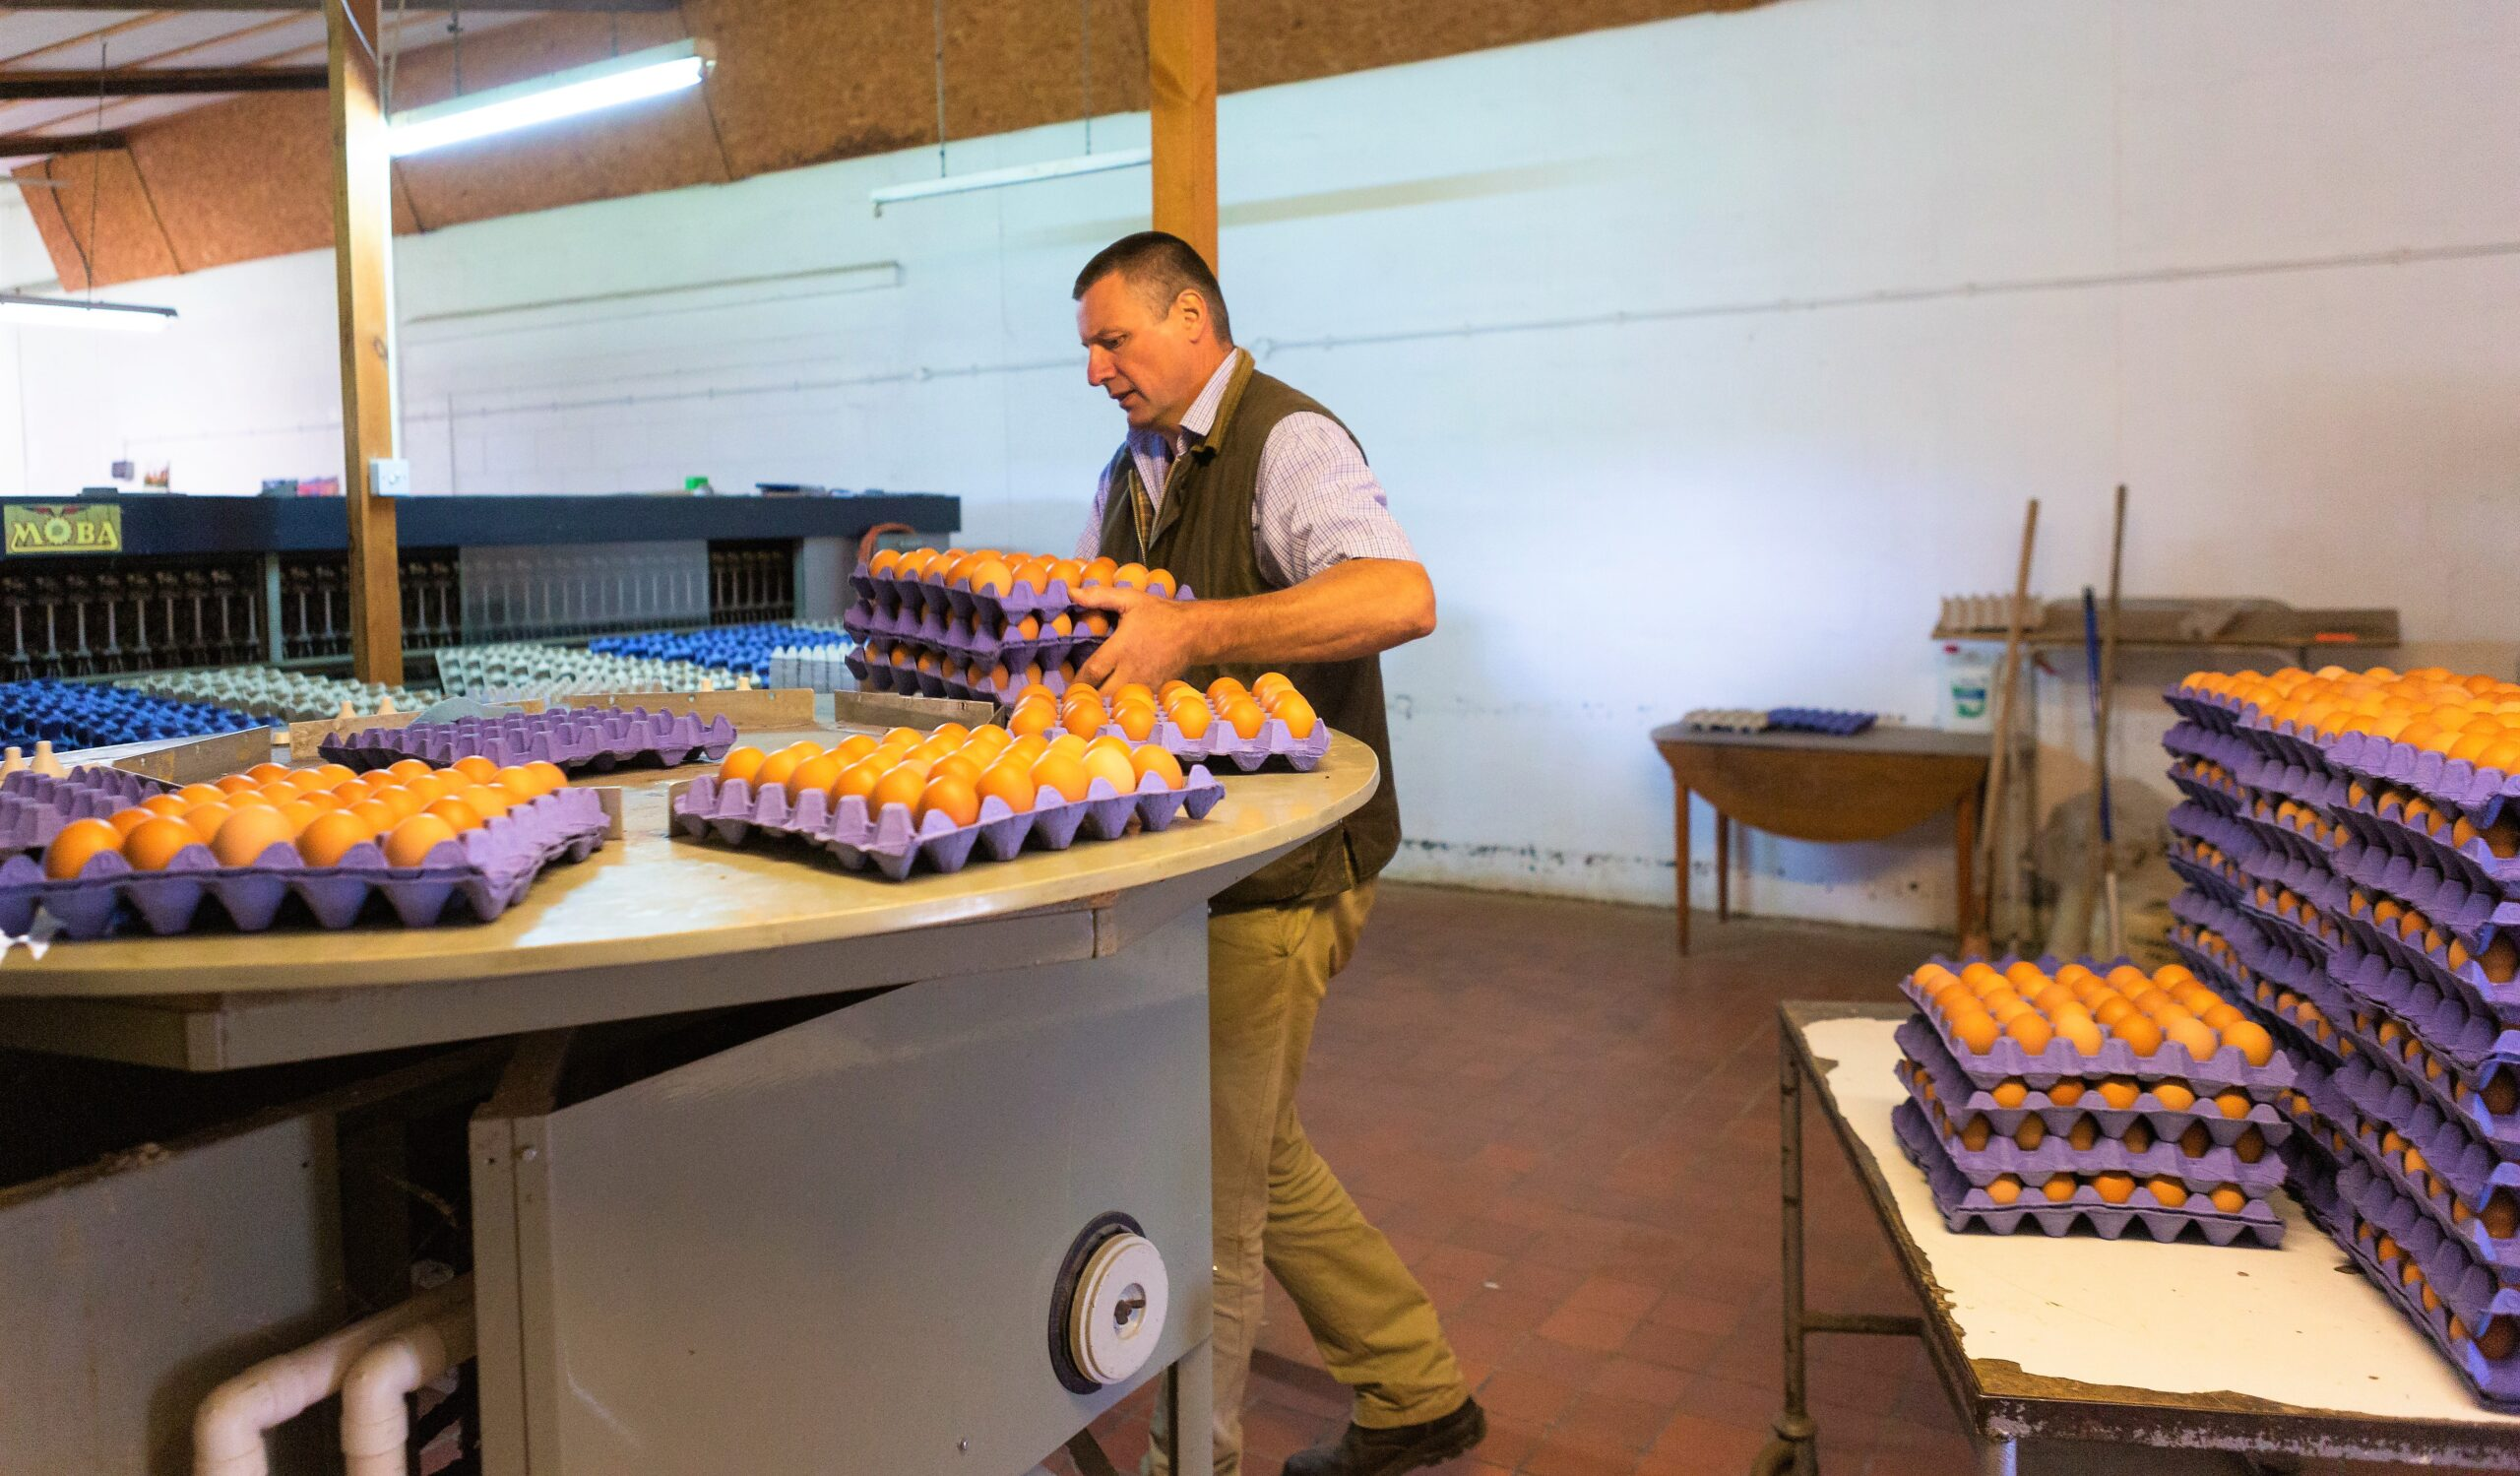 Scramble for eggs during lockdown led to sales surge for Welsh farmer